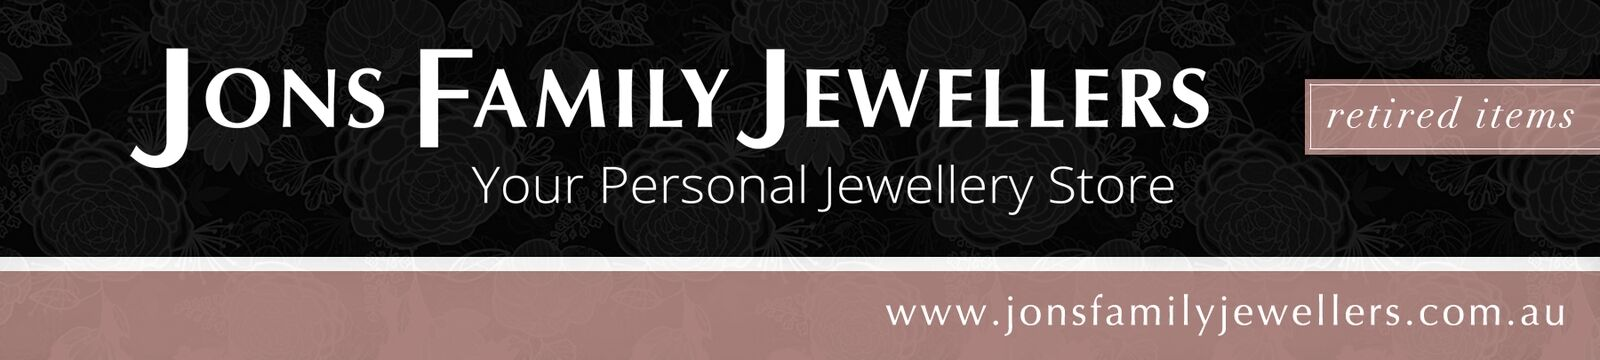 Jons Family Jewellers